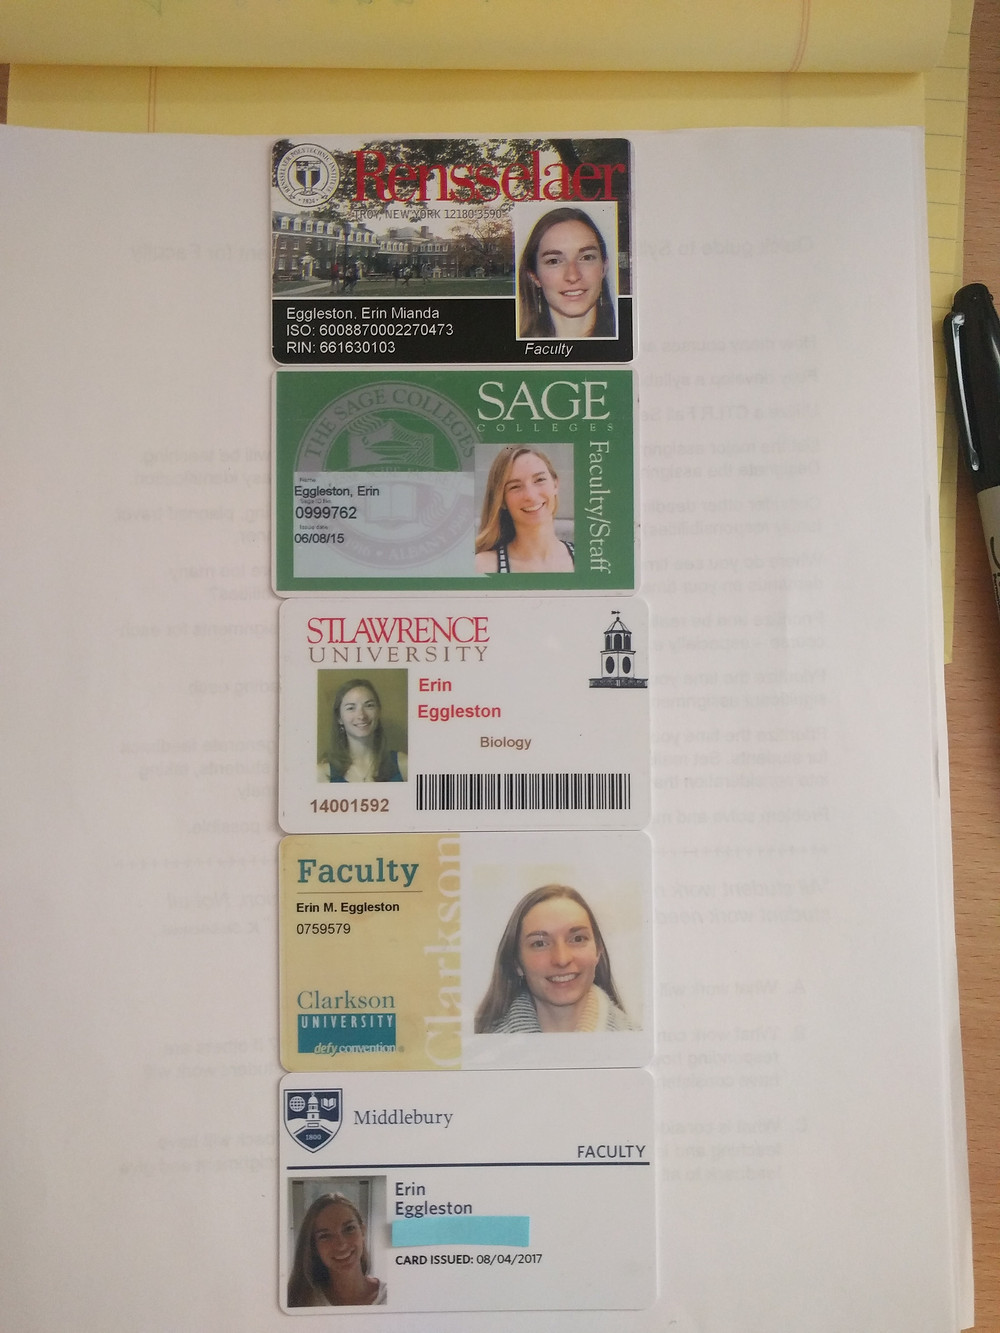 Tenure-track tracks: my assortment of Faculty IDs